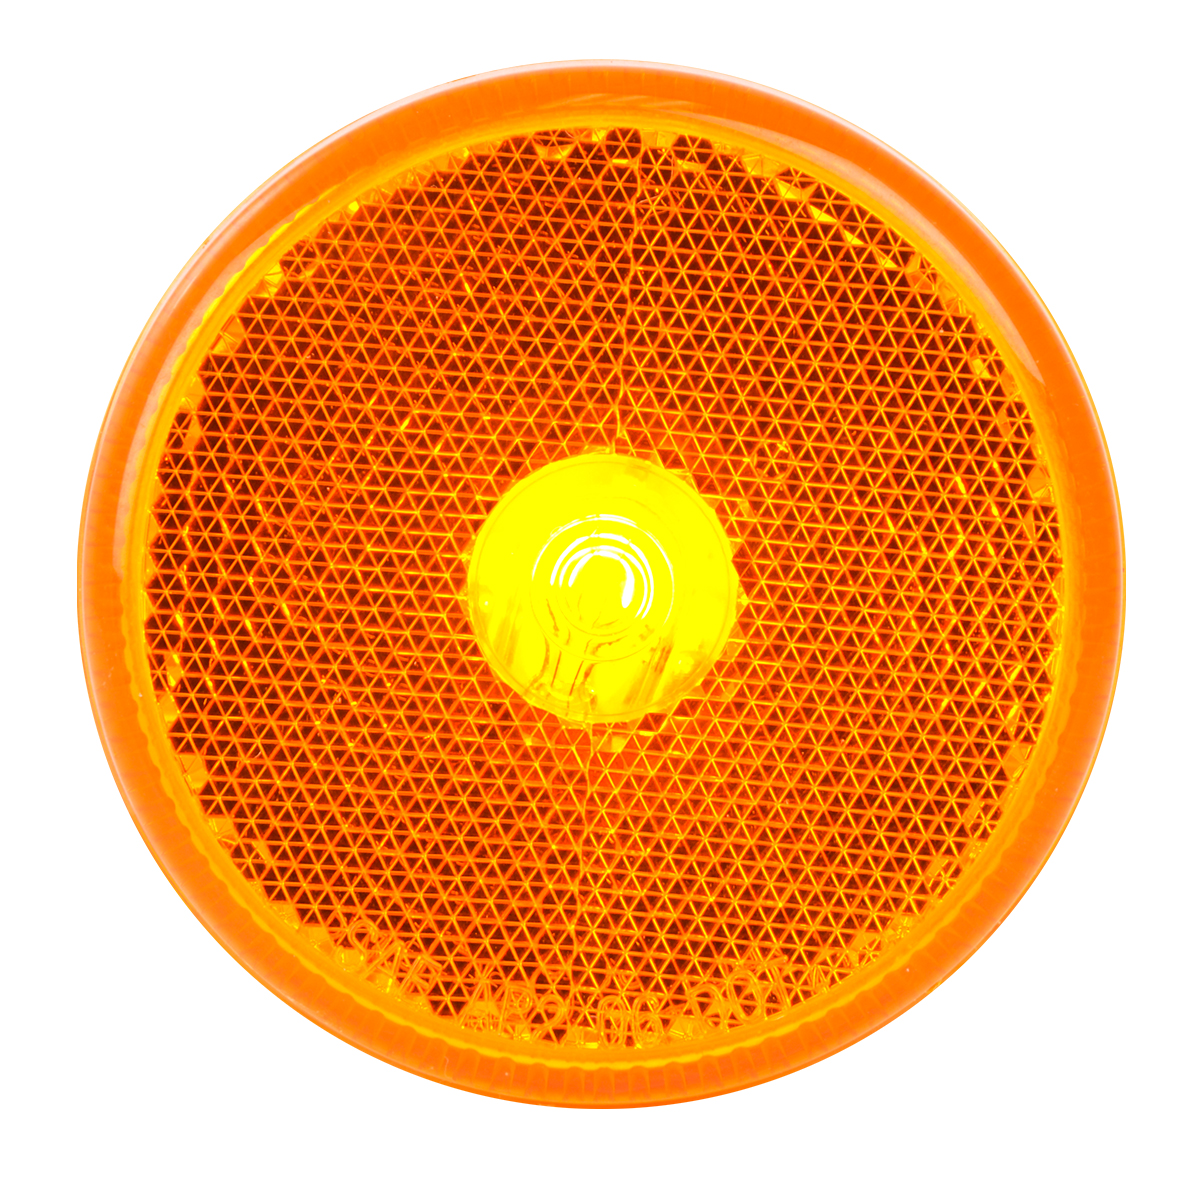 "#80713 2 ½"" Round Incandescent Flat Amber/Amber Light"